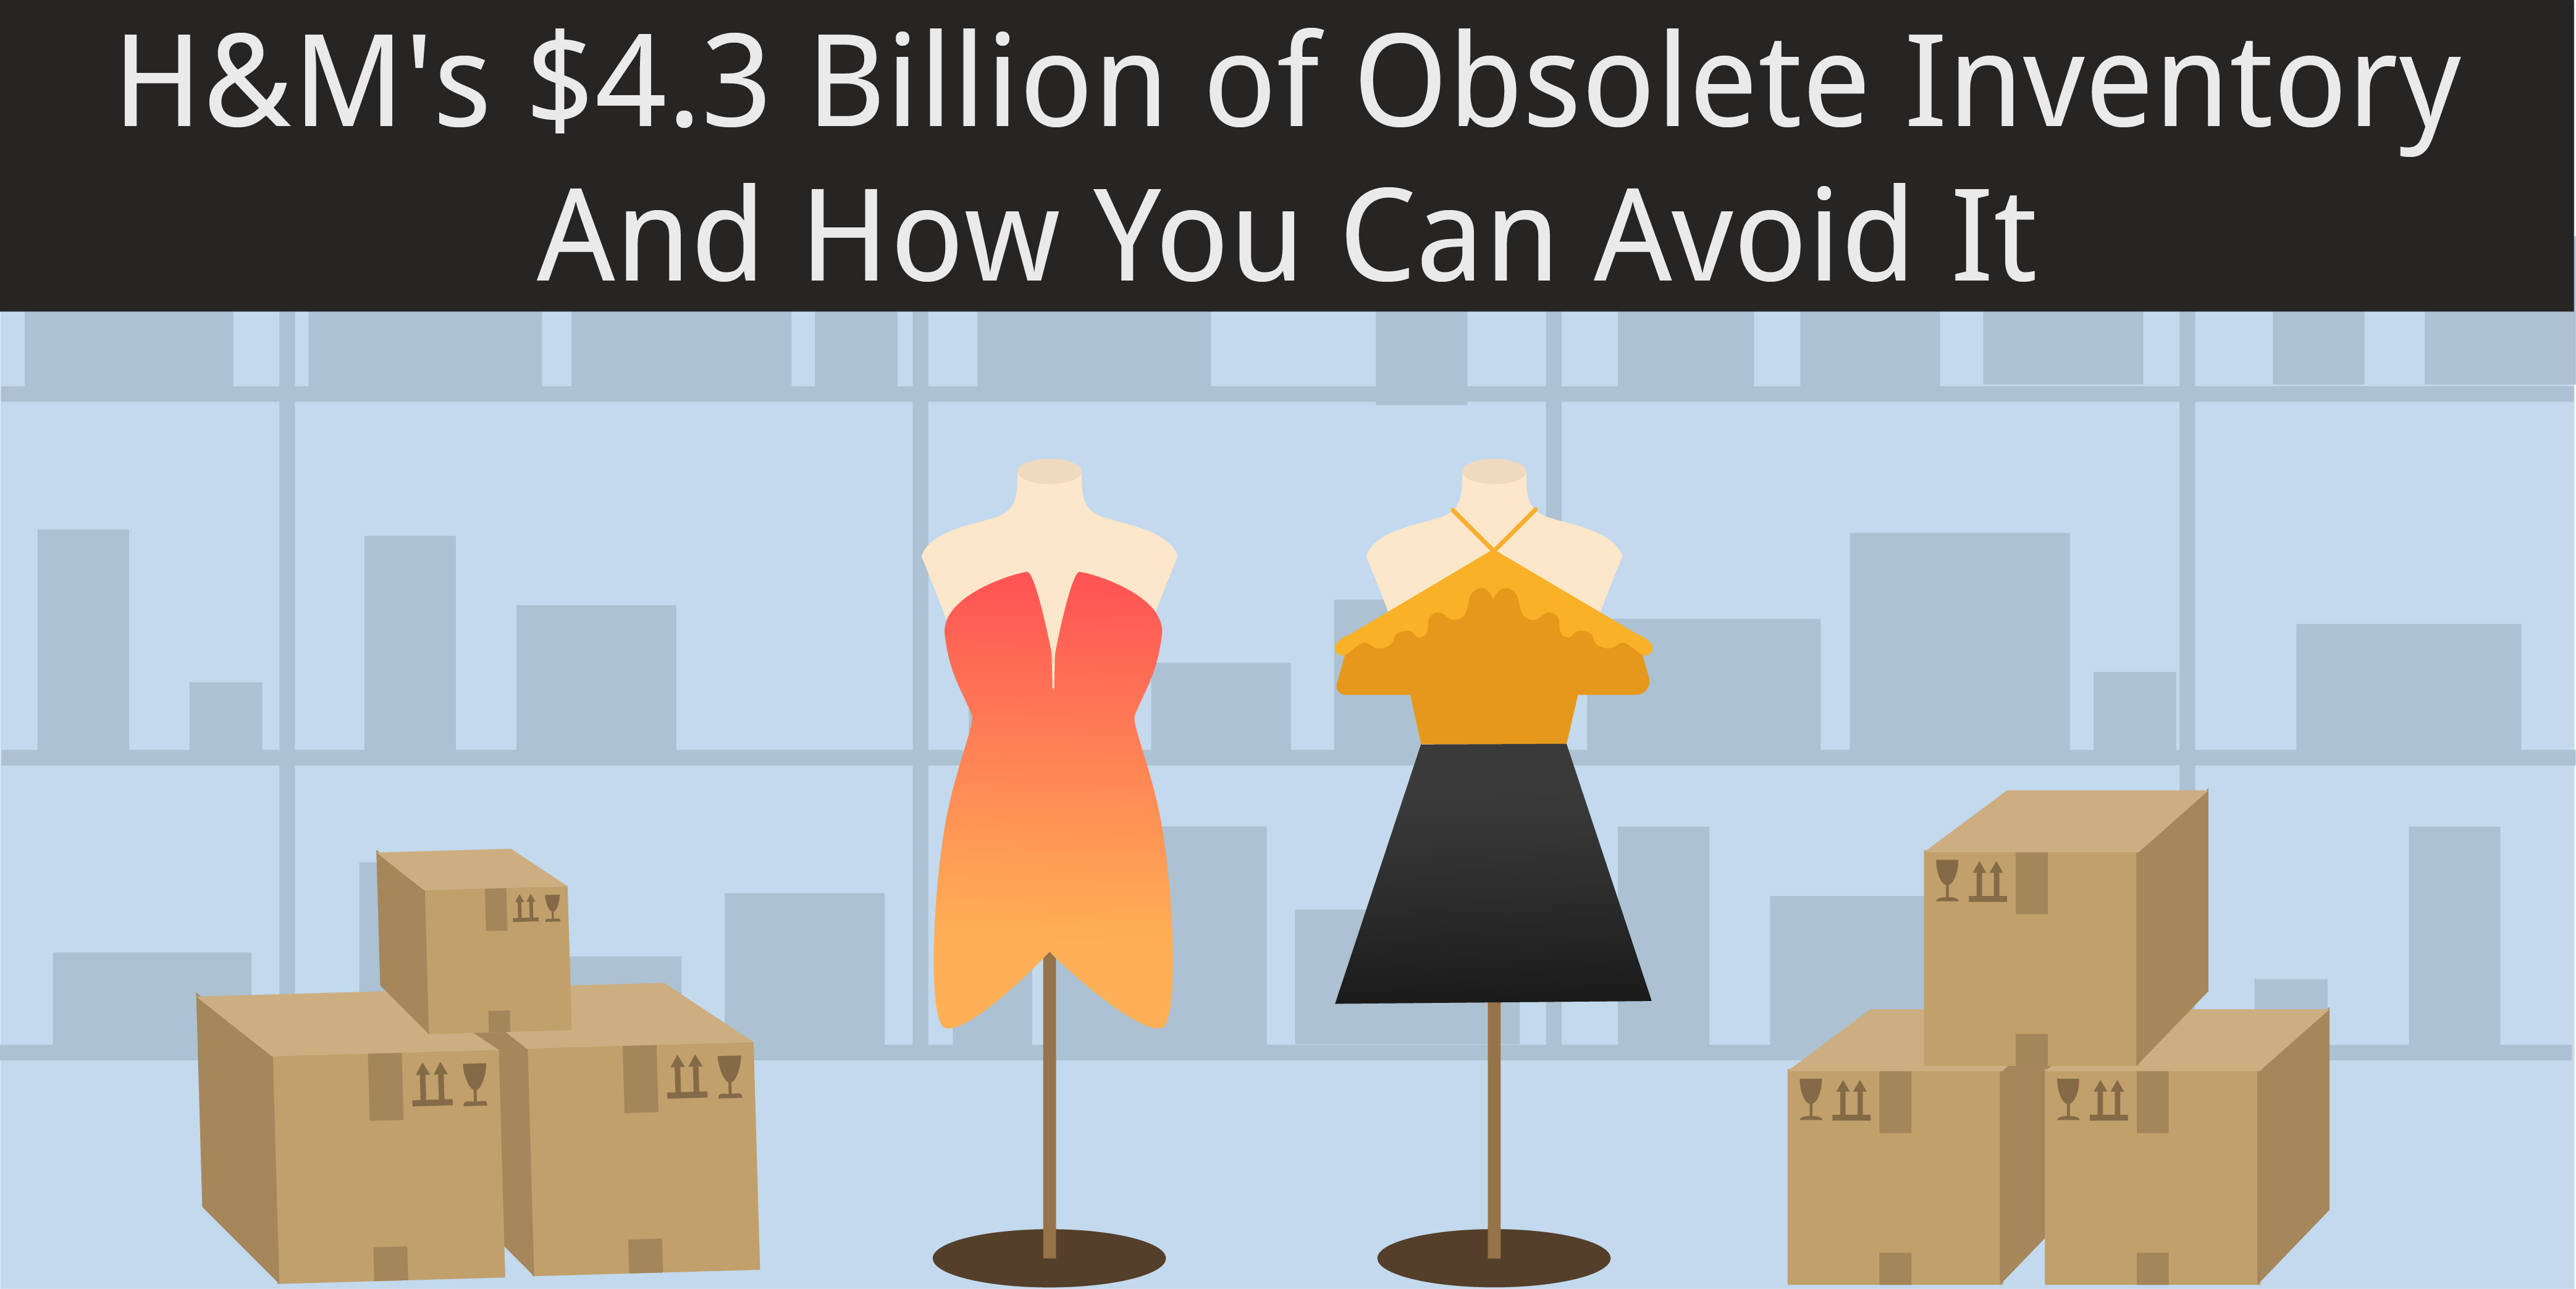 hms-4-3-billion-of-obsolete-inventory-and-how-you-can-avoid-it2